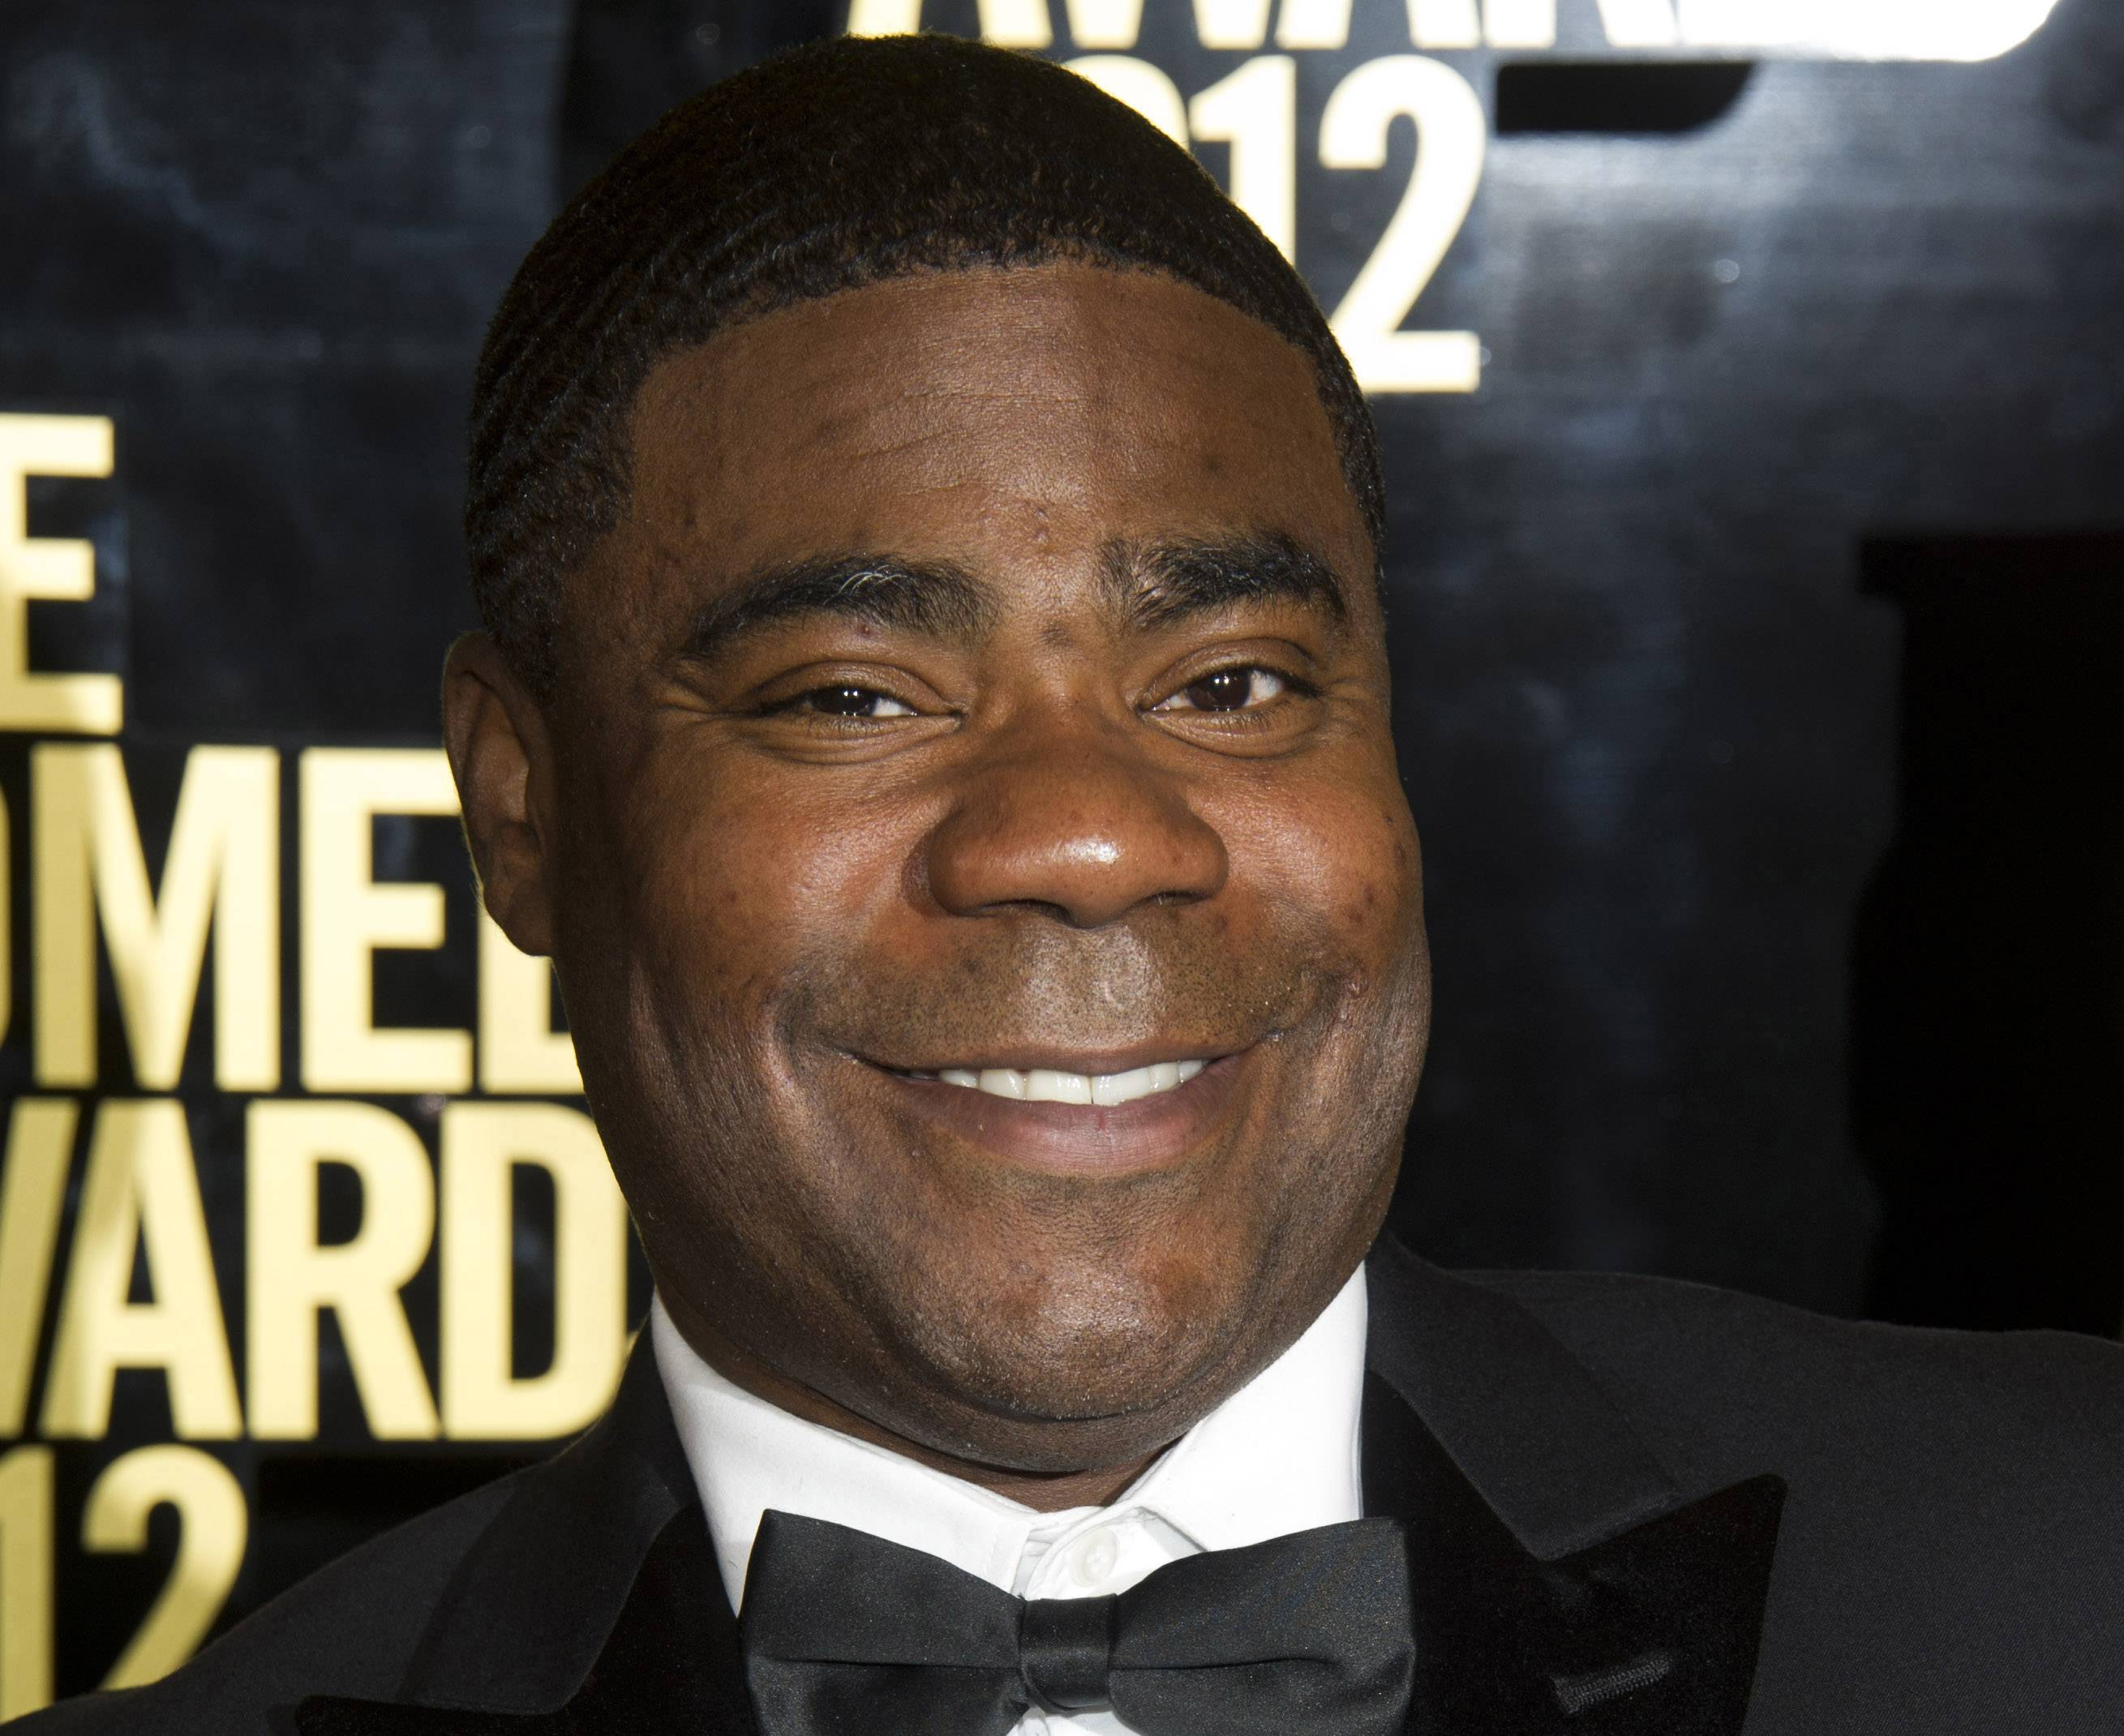 Actor-comedian Tracy Morgan has been moved from a hospital to a rehabilitation facility as he recovers from a serious auto accident in New Jersey, his spokesman said Friday.